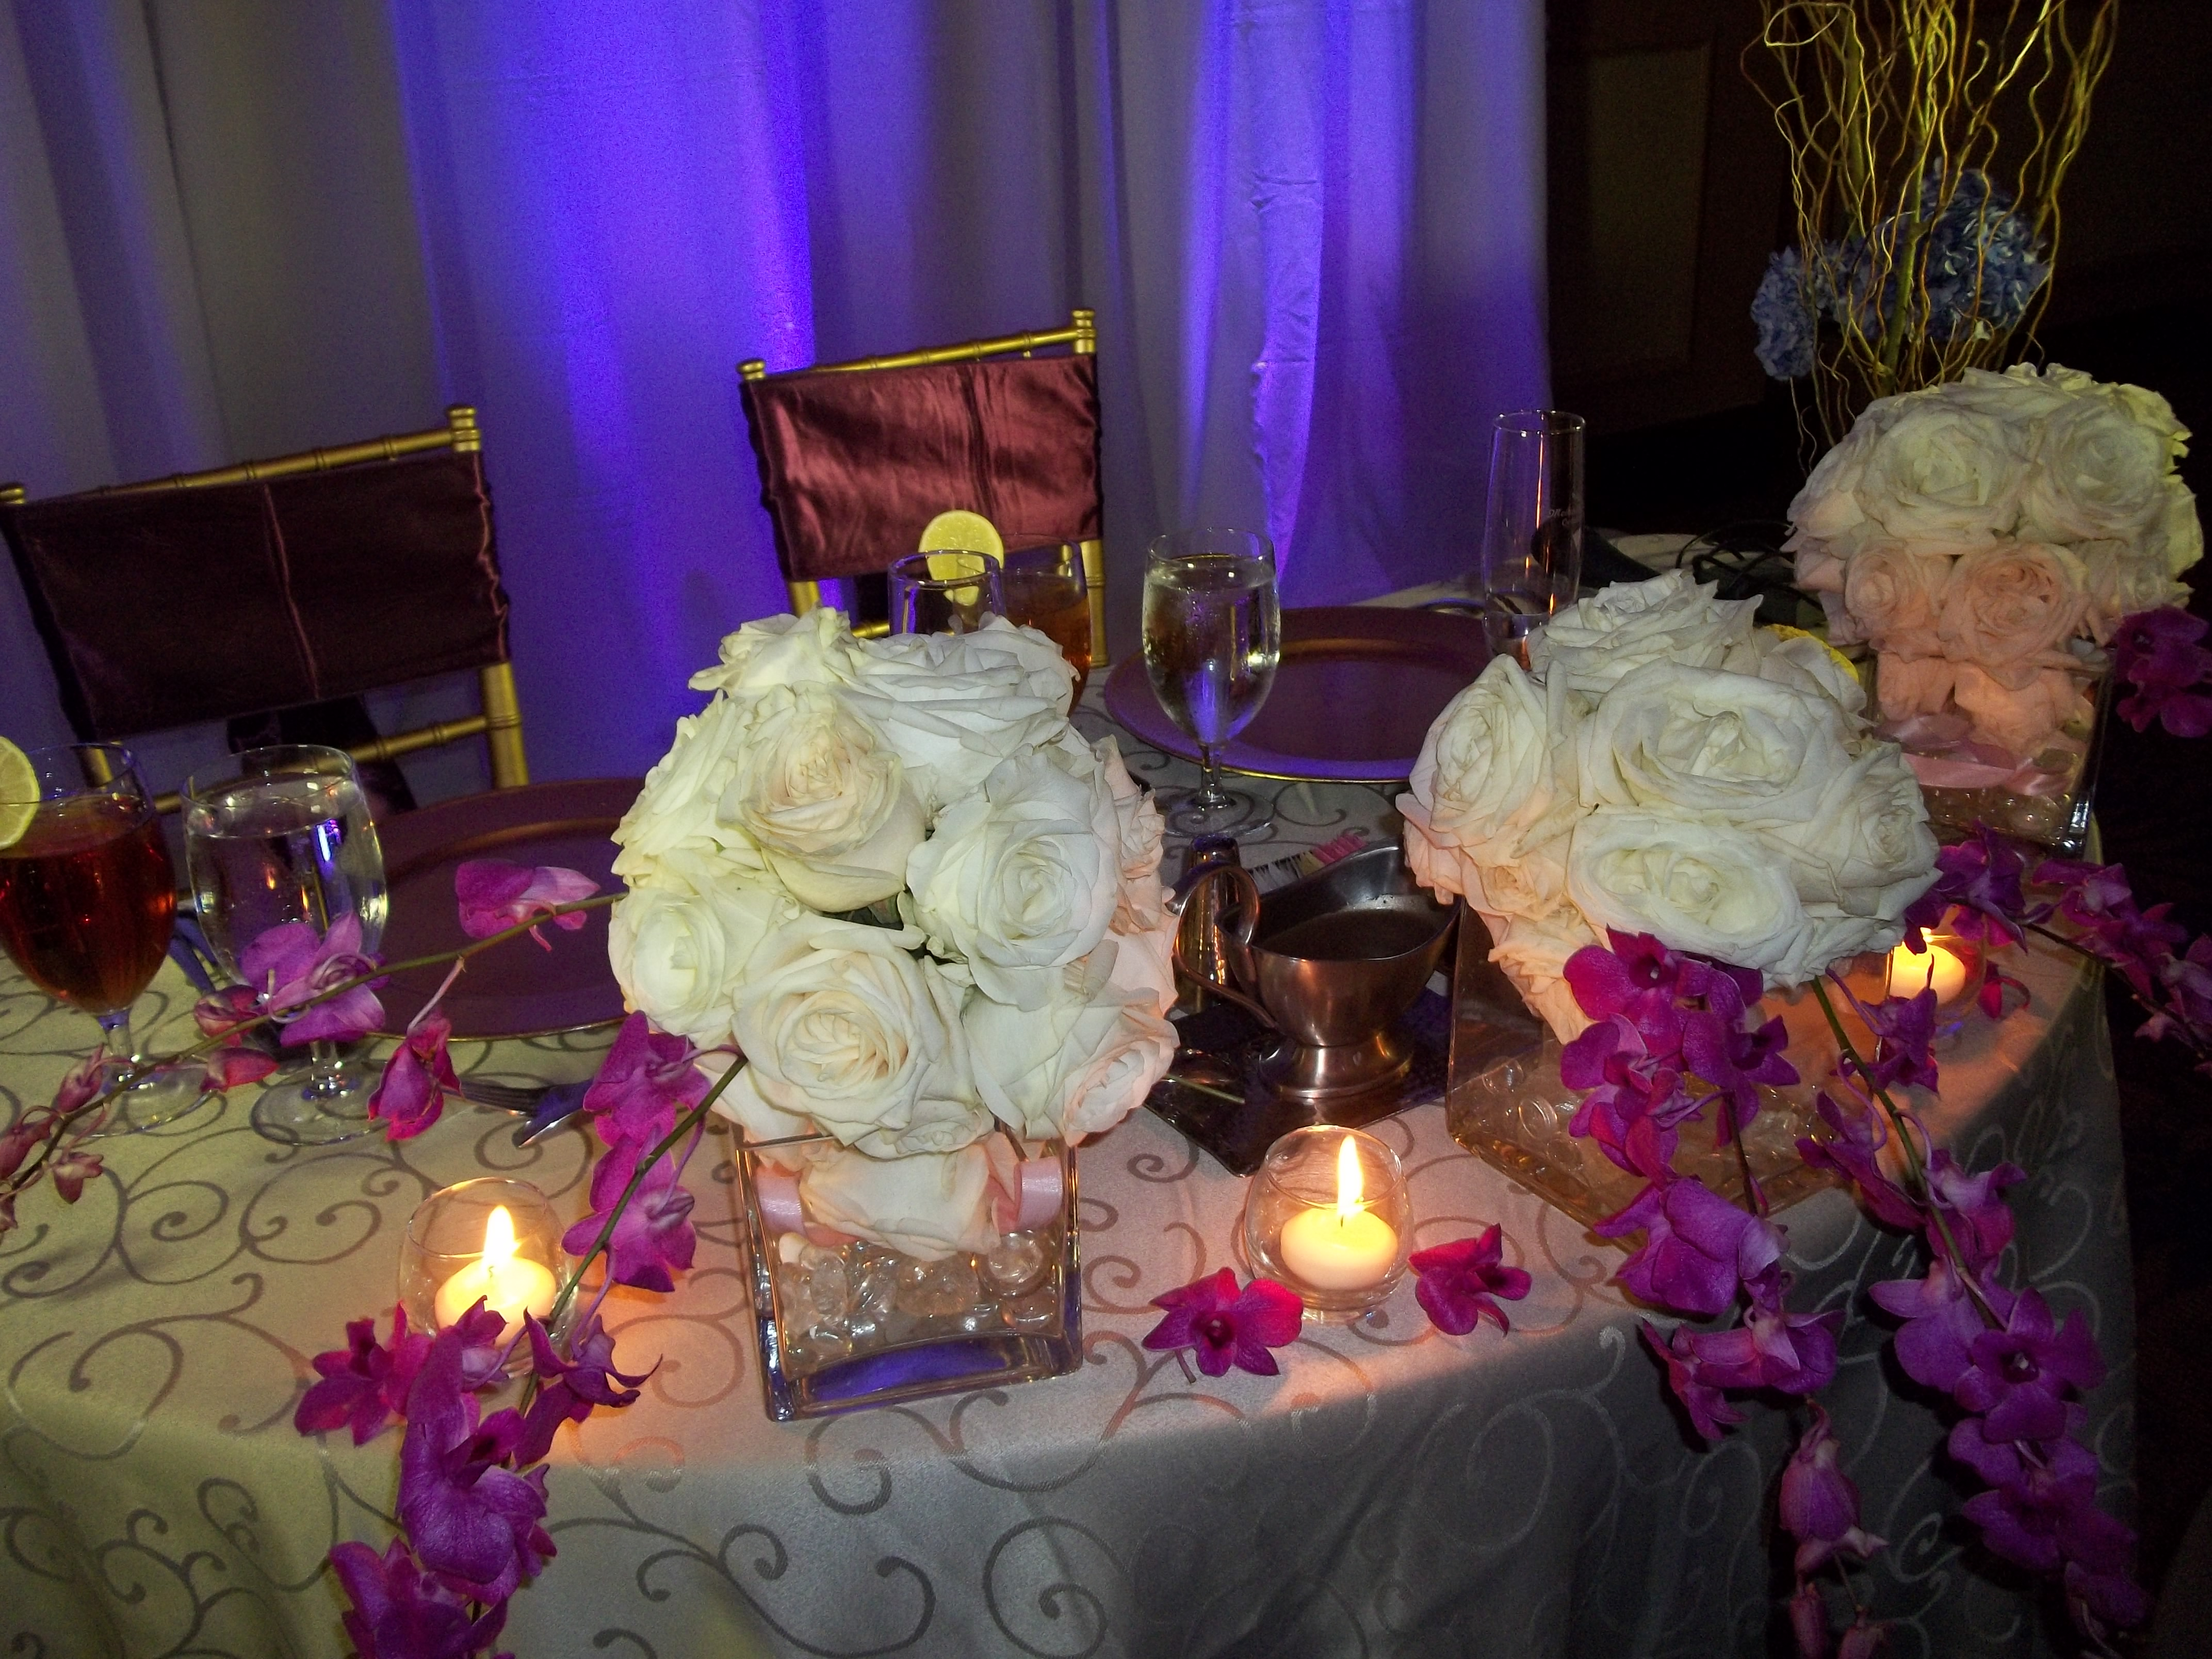 white roses Pomander Balls with orchids